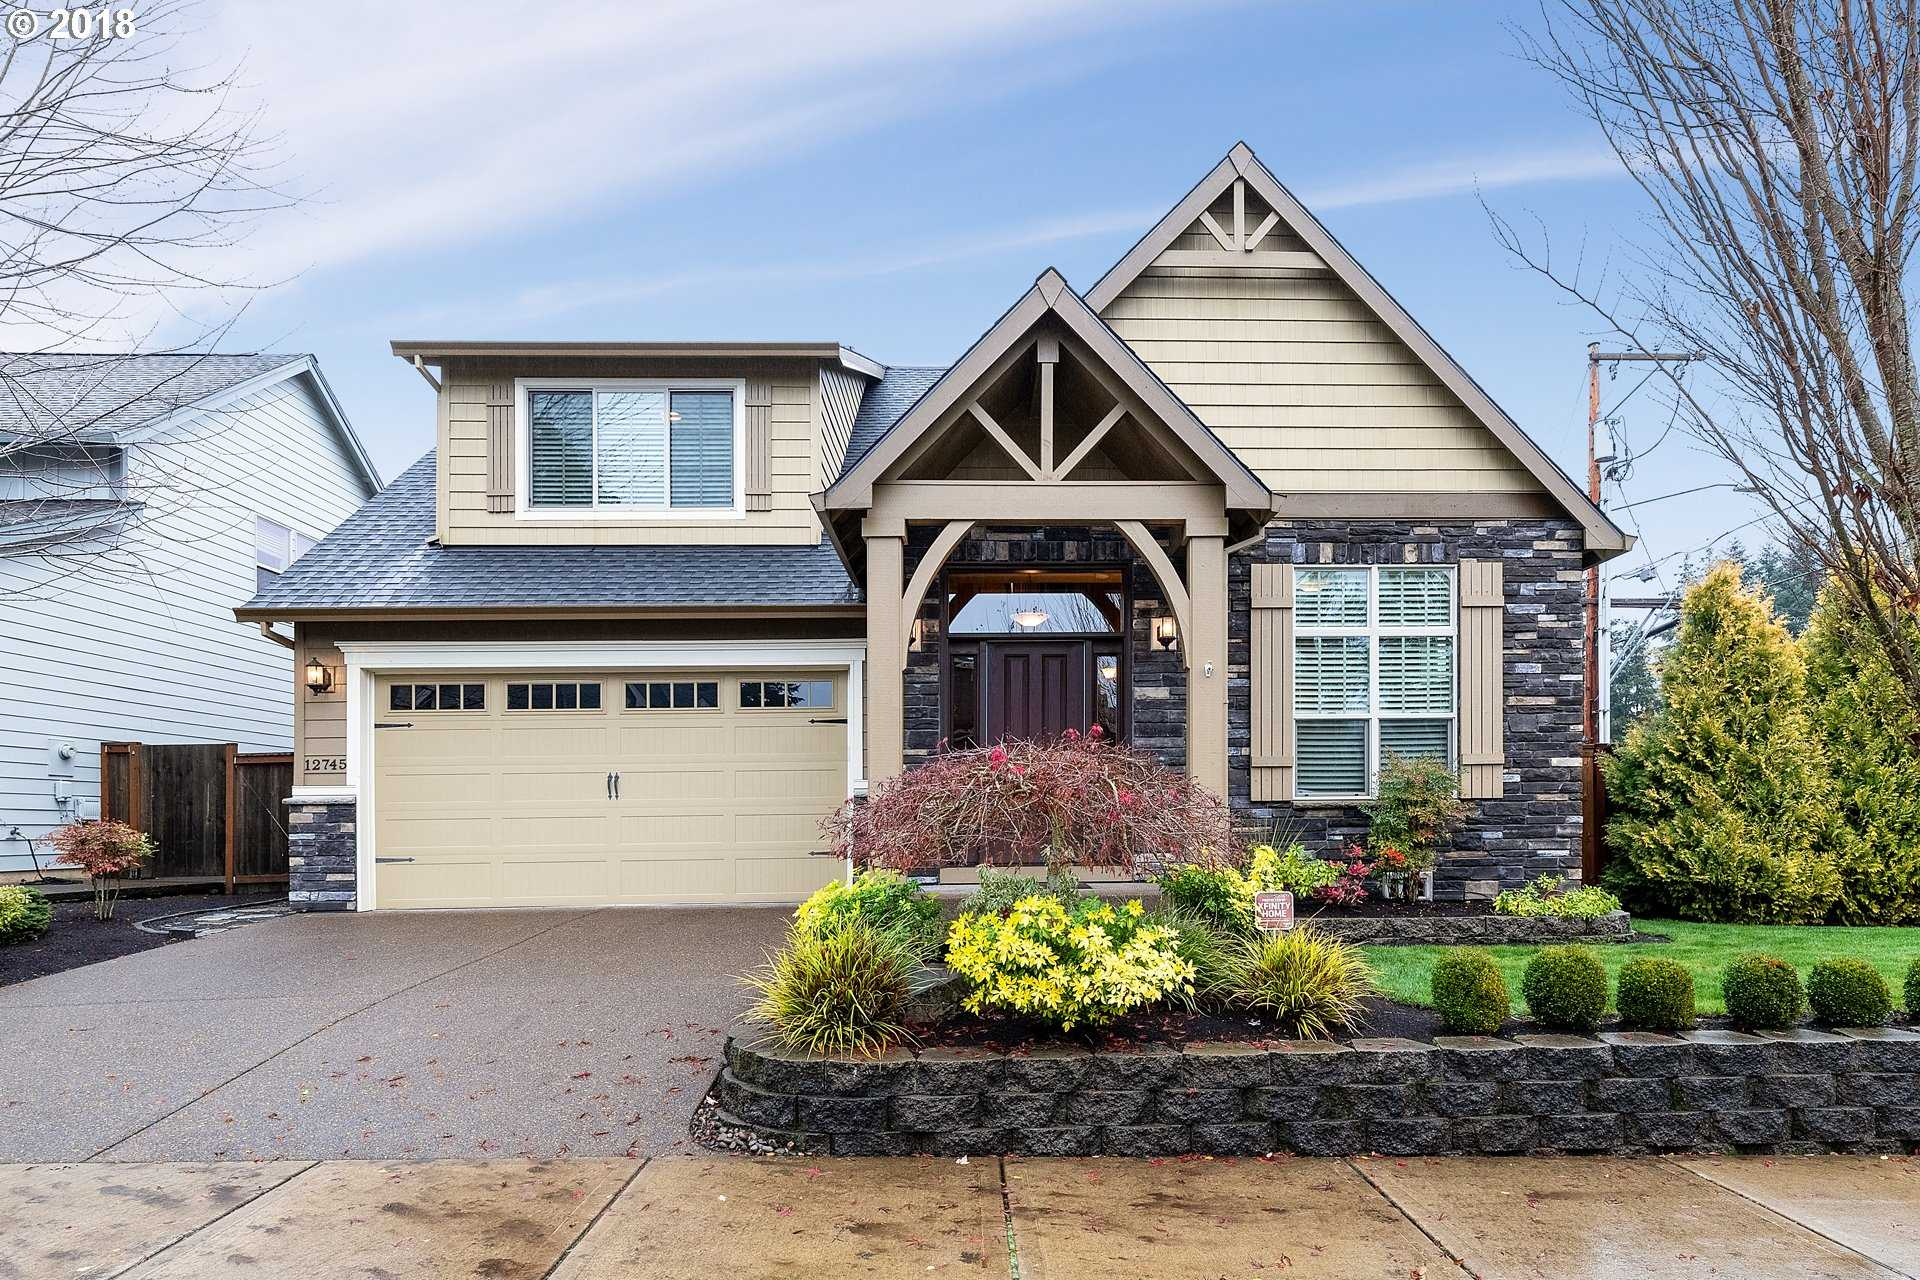 $512,900 - 4Br/3Ba -  for Sale in Katys Place, Oregon City